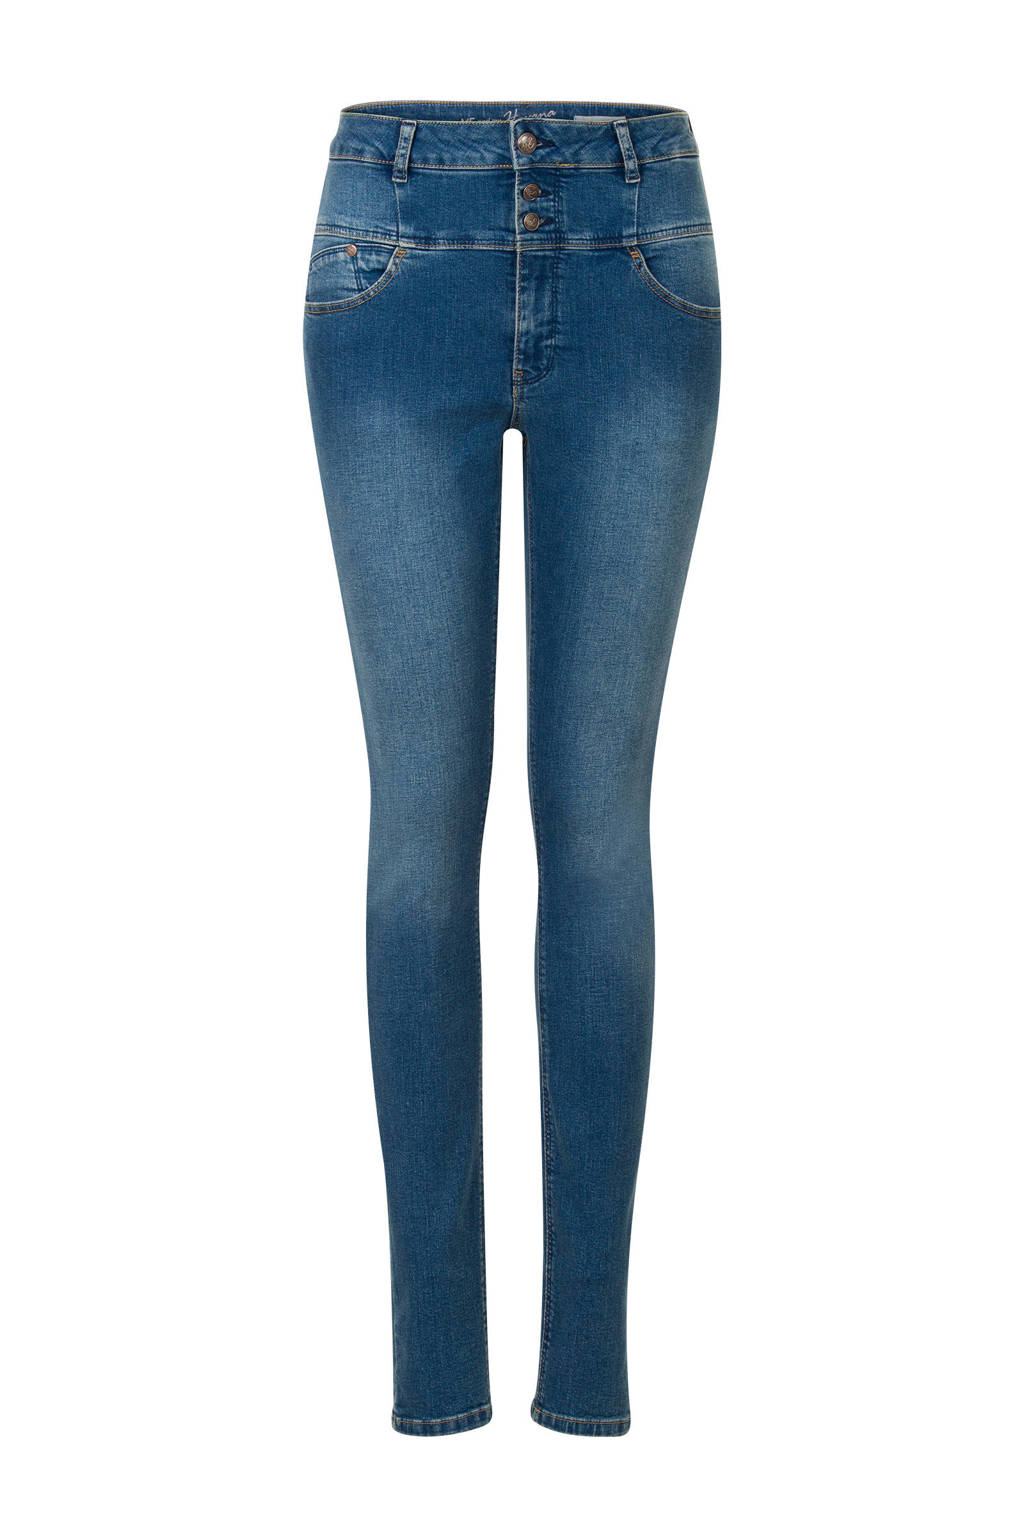 Miss Etam Regulier jeans Havana high wasted blauw, Blauw